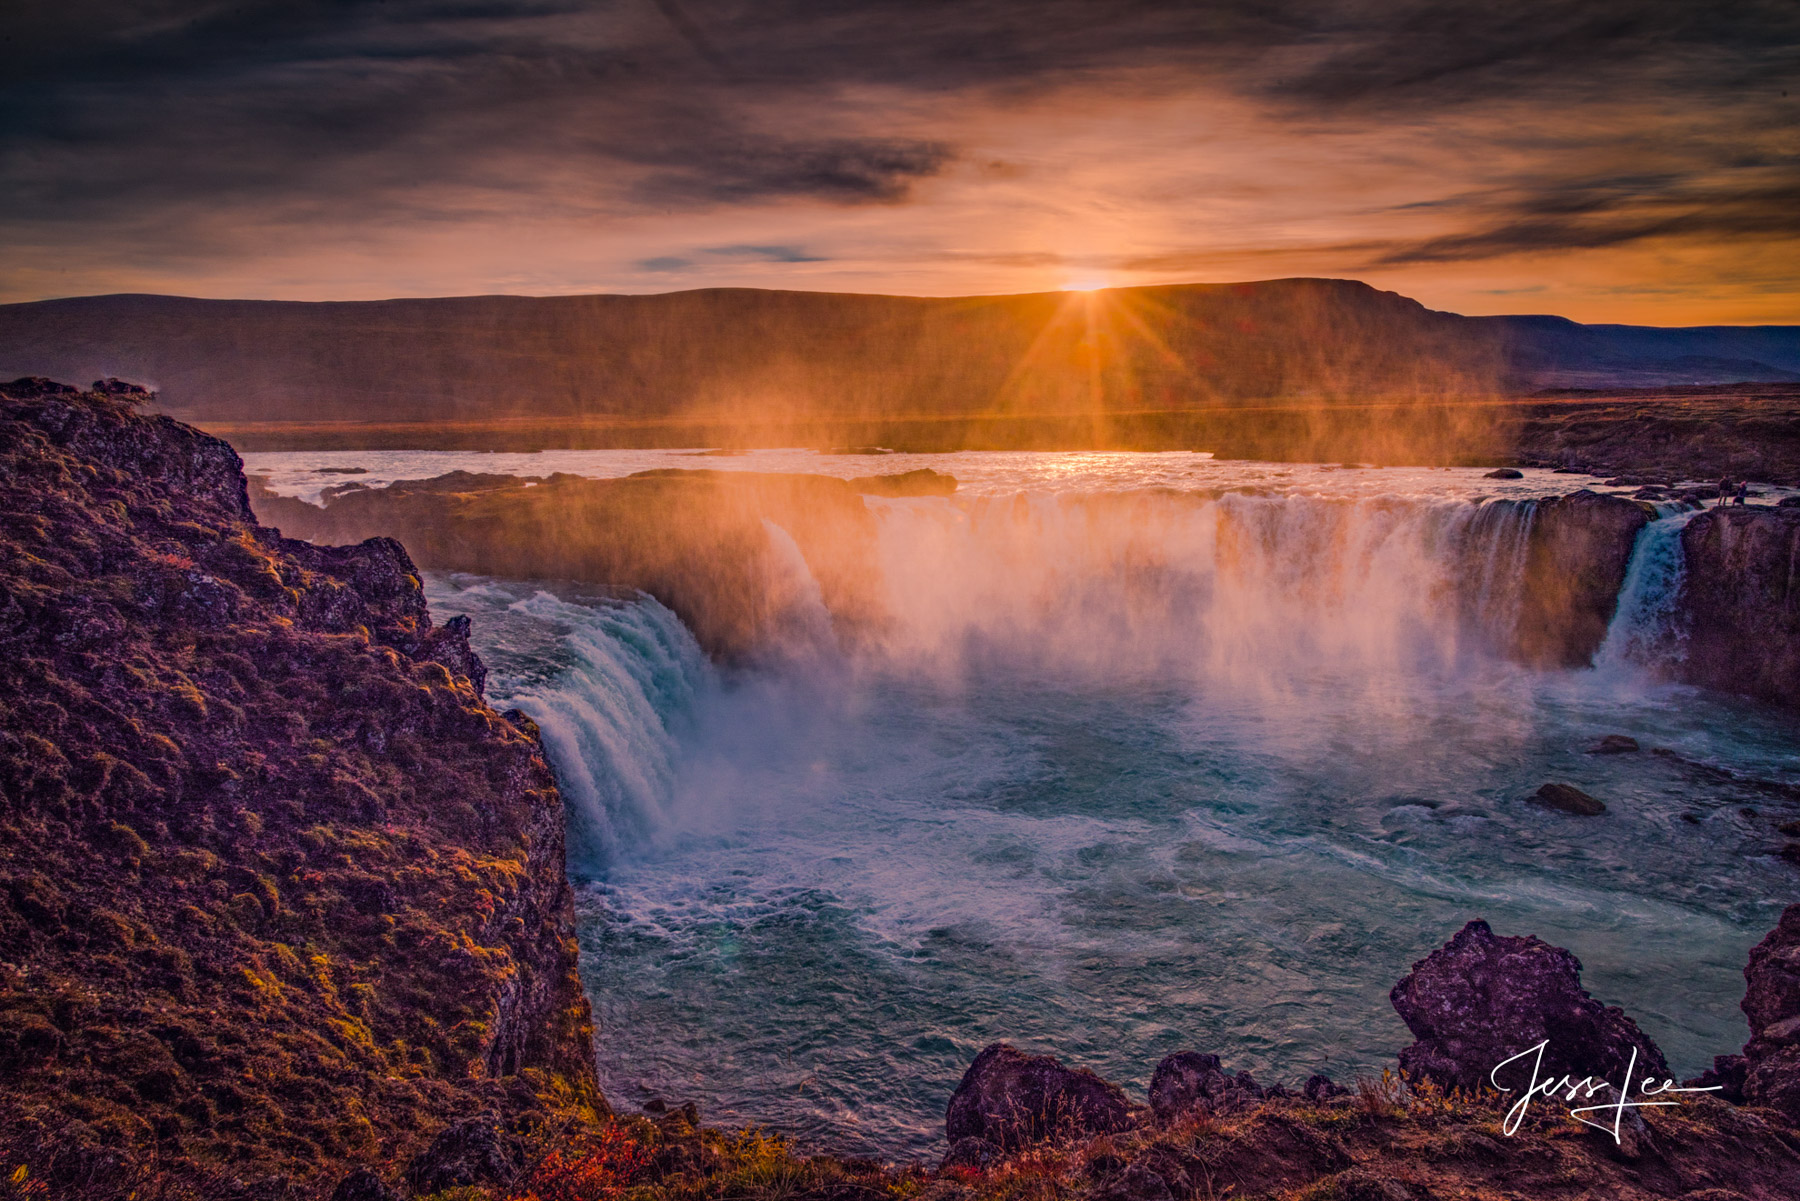 Limited Edition of 50 Exclusive high-resolution Museum Quality Fine Art Prints of Gooafoss Sunset. The origin of the waterfall...